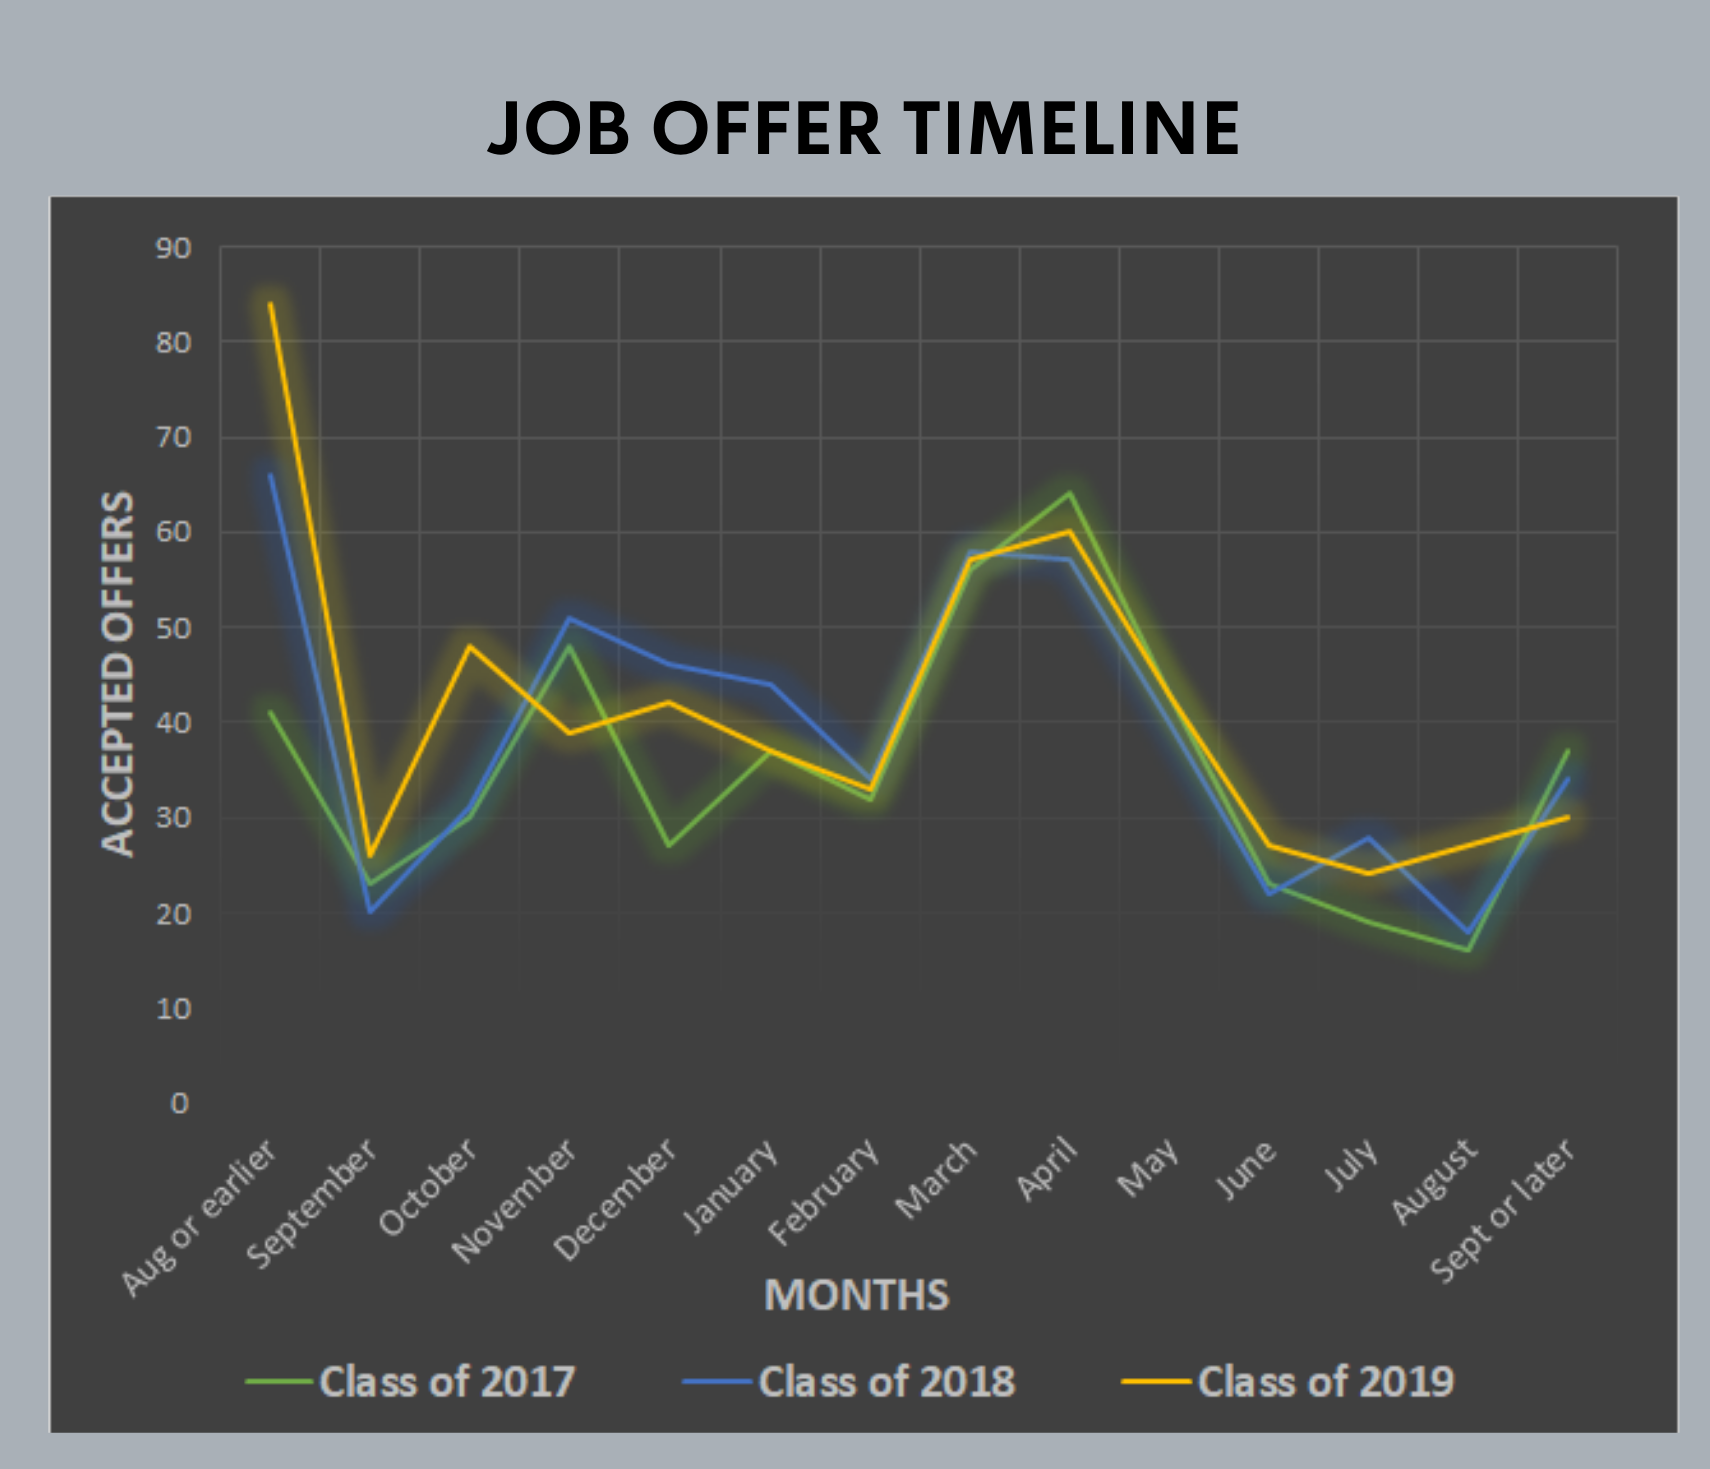 The timeline of job offers from 2017, 2018, and 2019